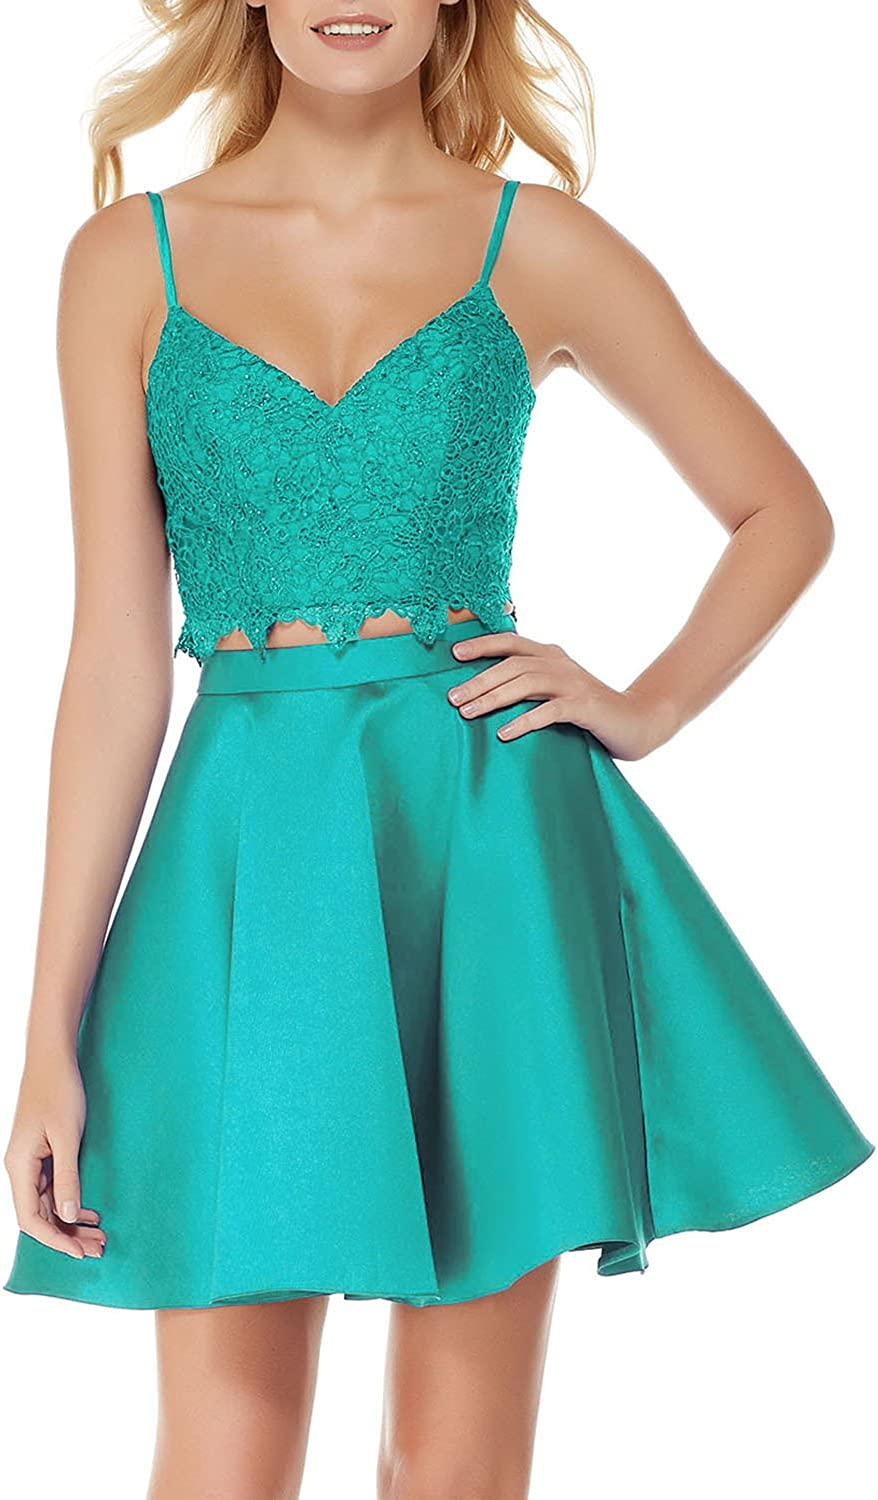 Spaghetti Straps 2 Piece Homecoming Prom Dresses Short for Juniors with Pockets